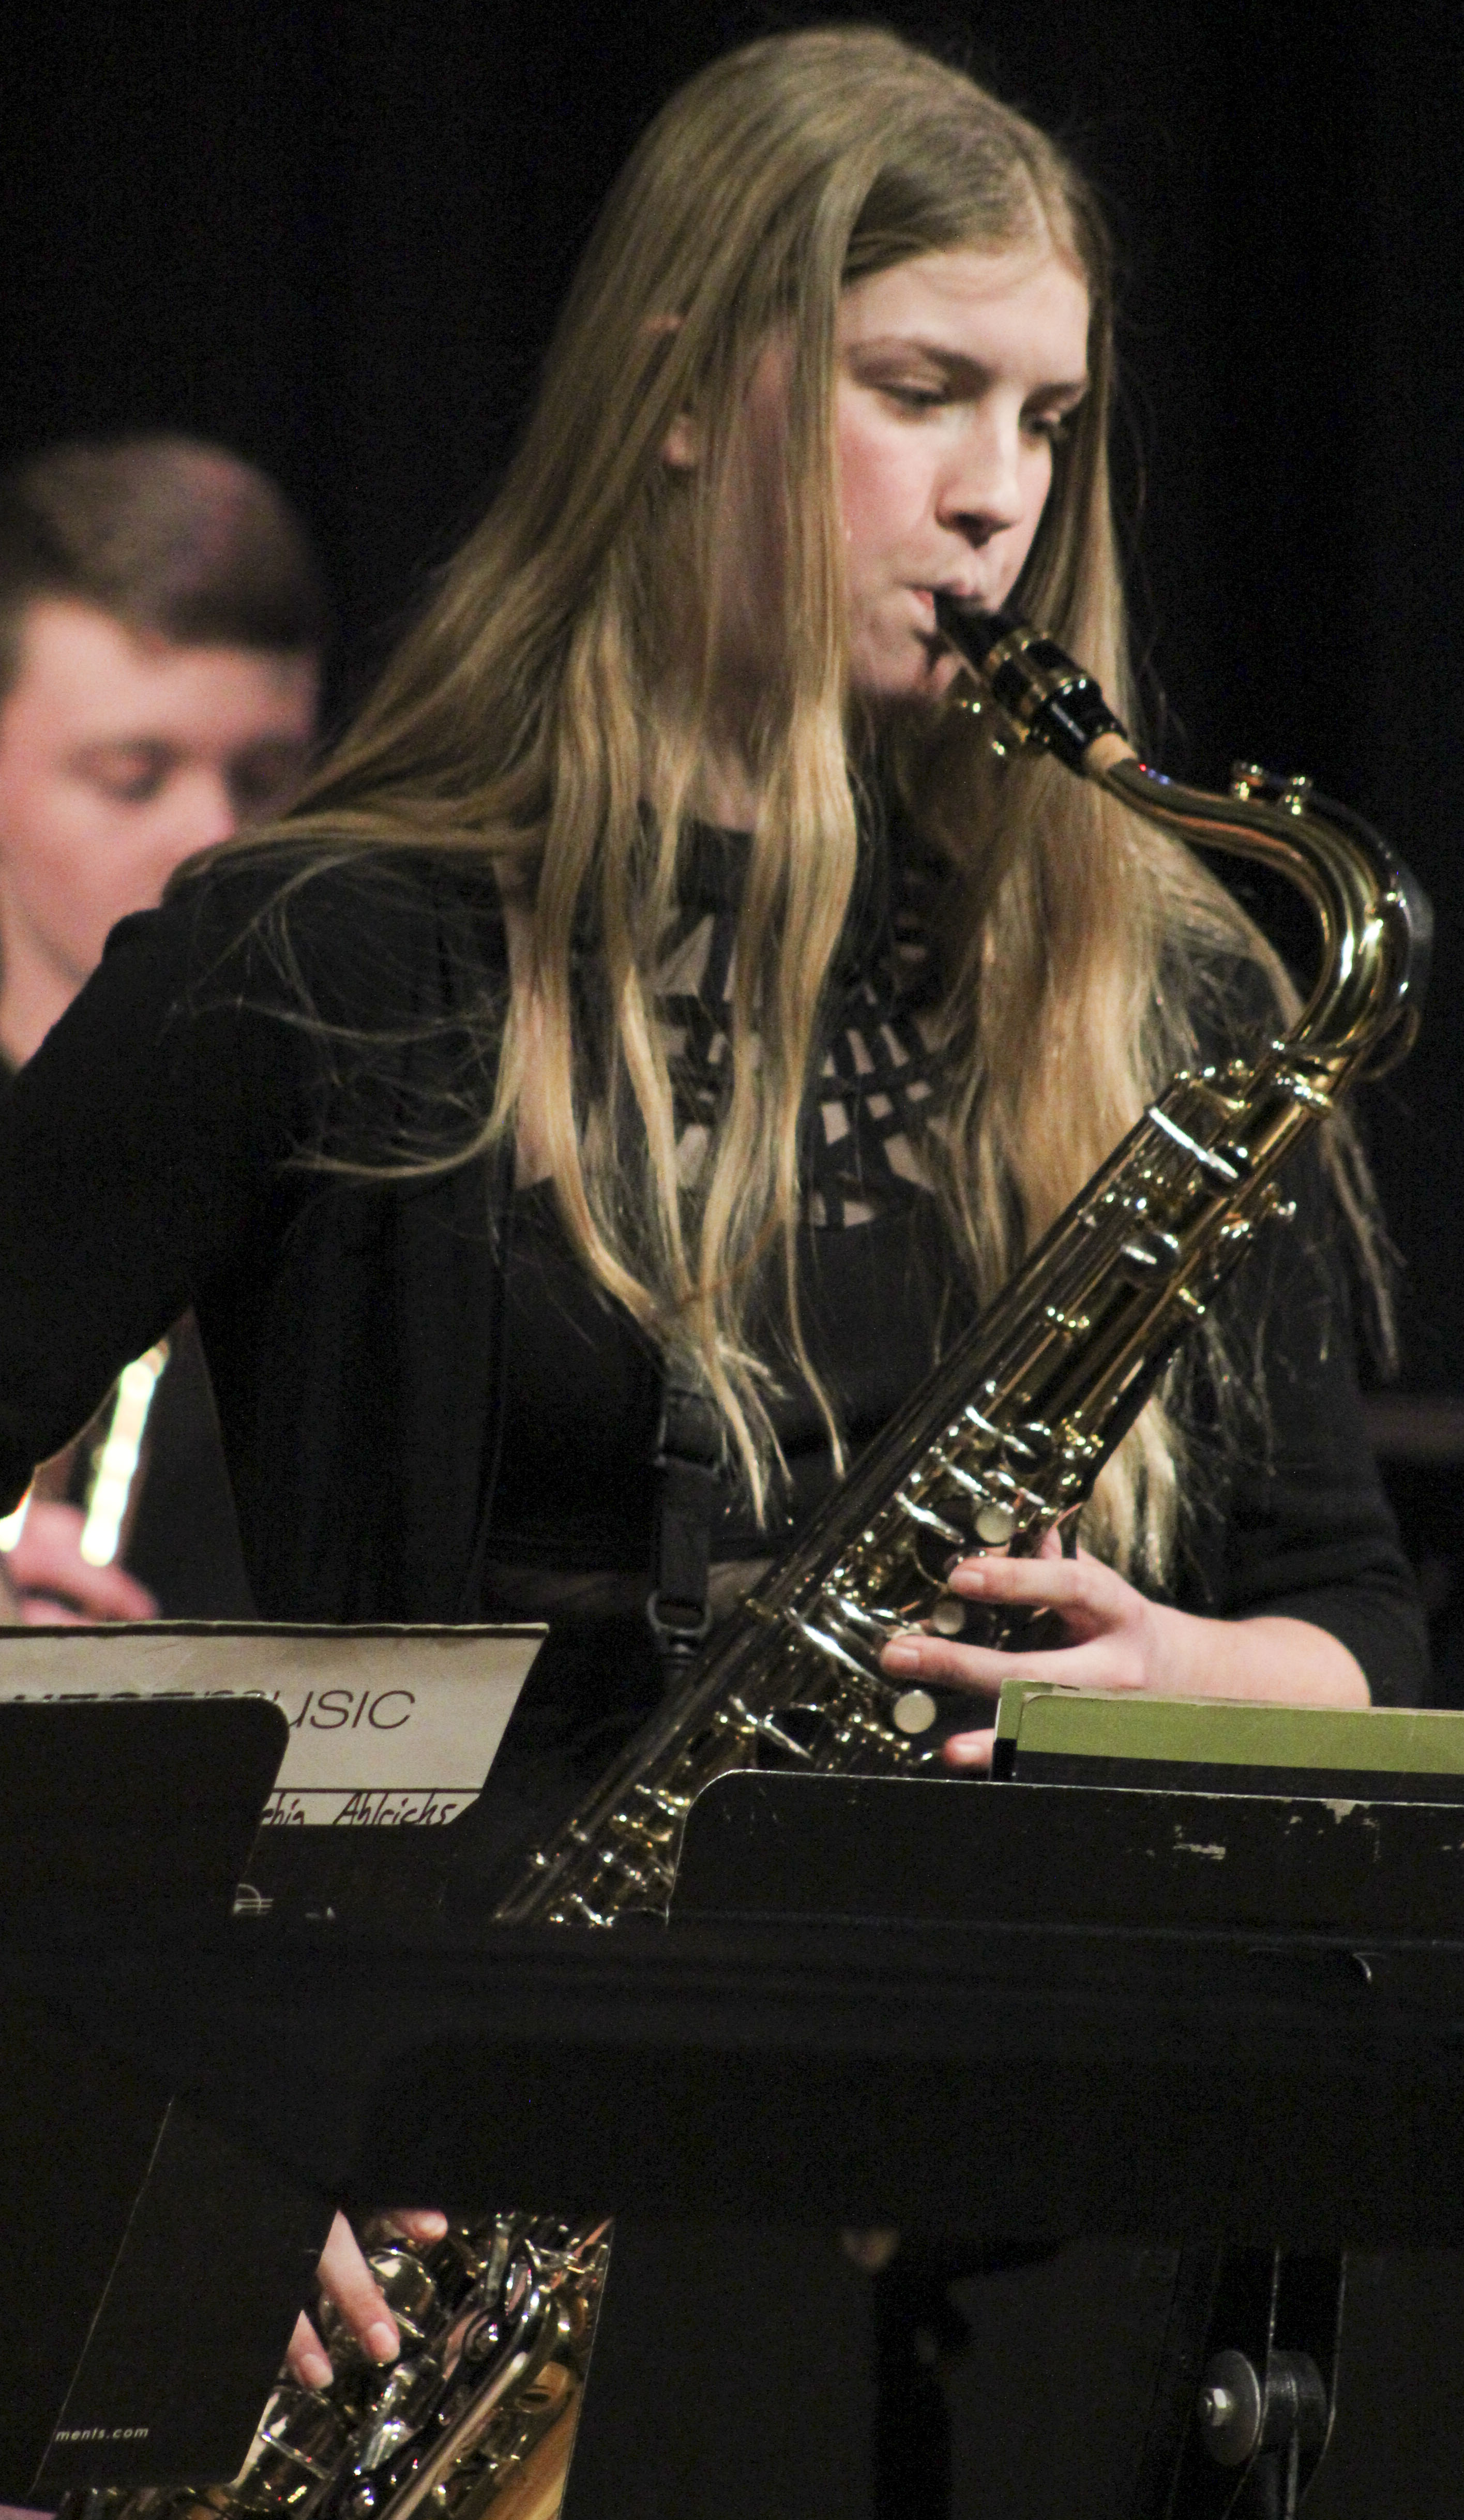 Olivia Besler of the Monticello High School jazz band performs a saxophone solo during An Evening of Jazz, a Feb. 21 concert that featured both the high school and middle school bands. (Photos by Pete Temple)